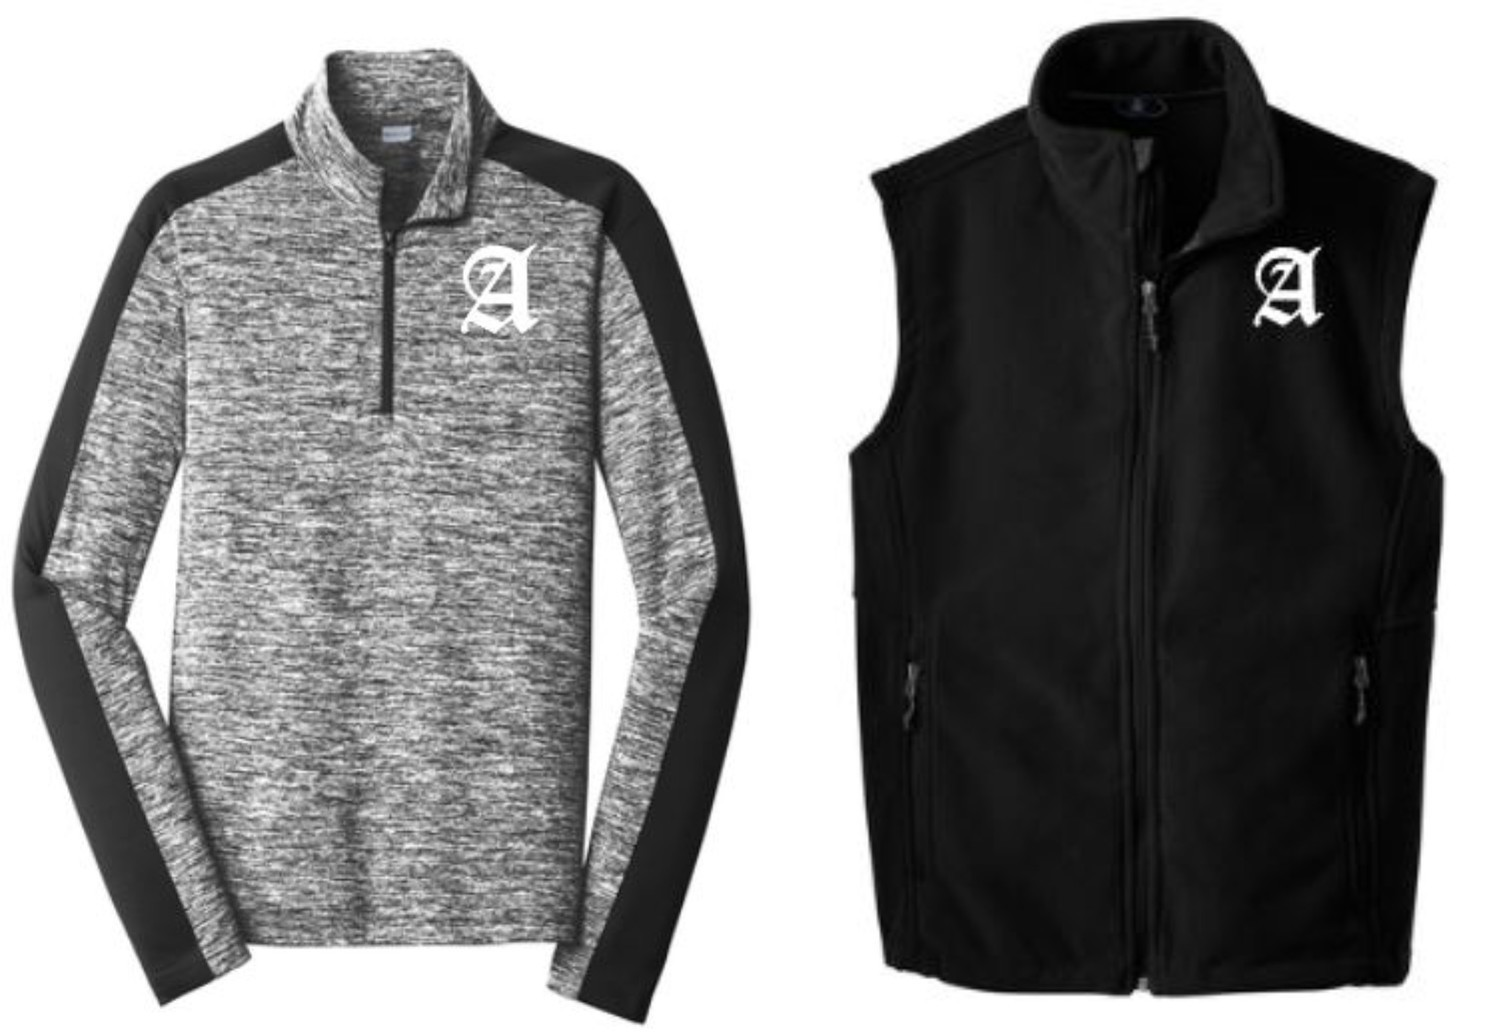 PERFORMANCE 1/4 ZIP OR FLEECE VEST